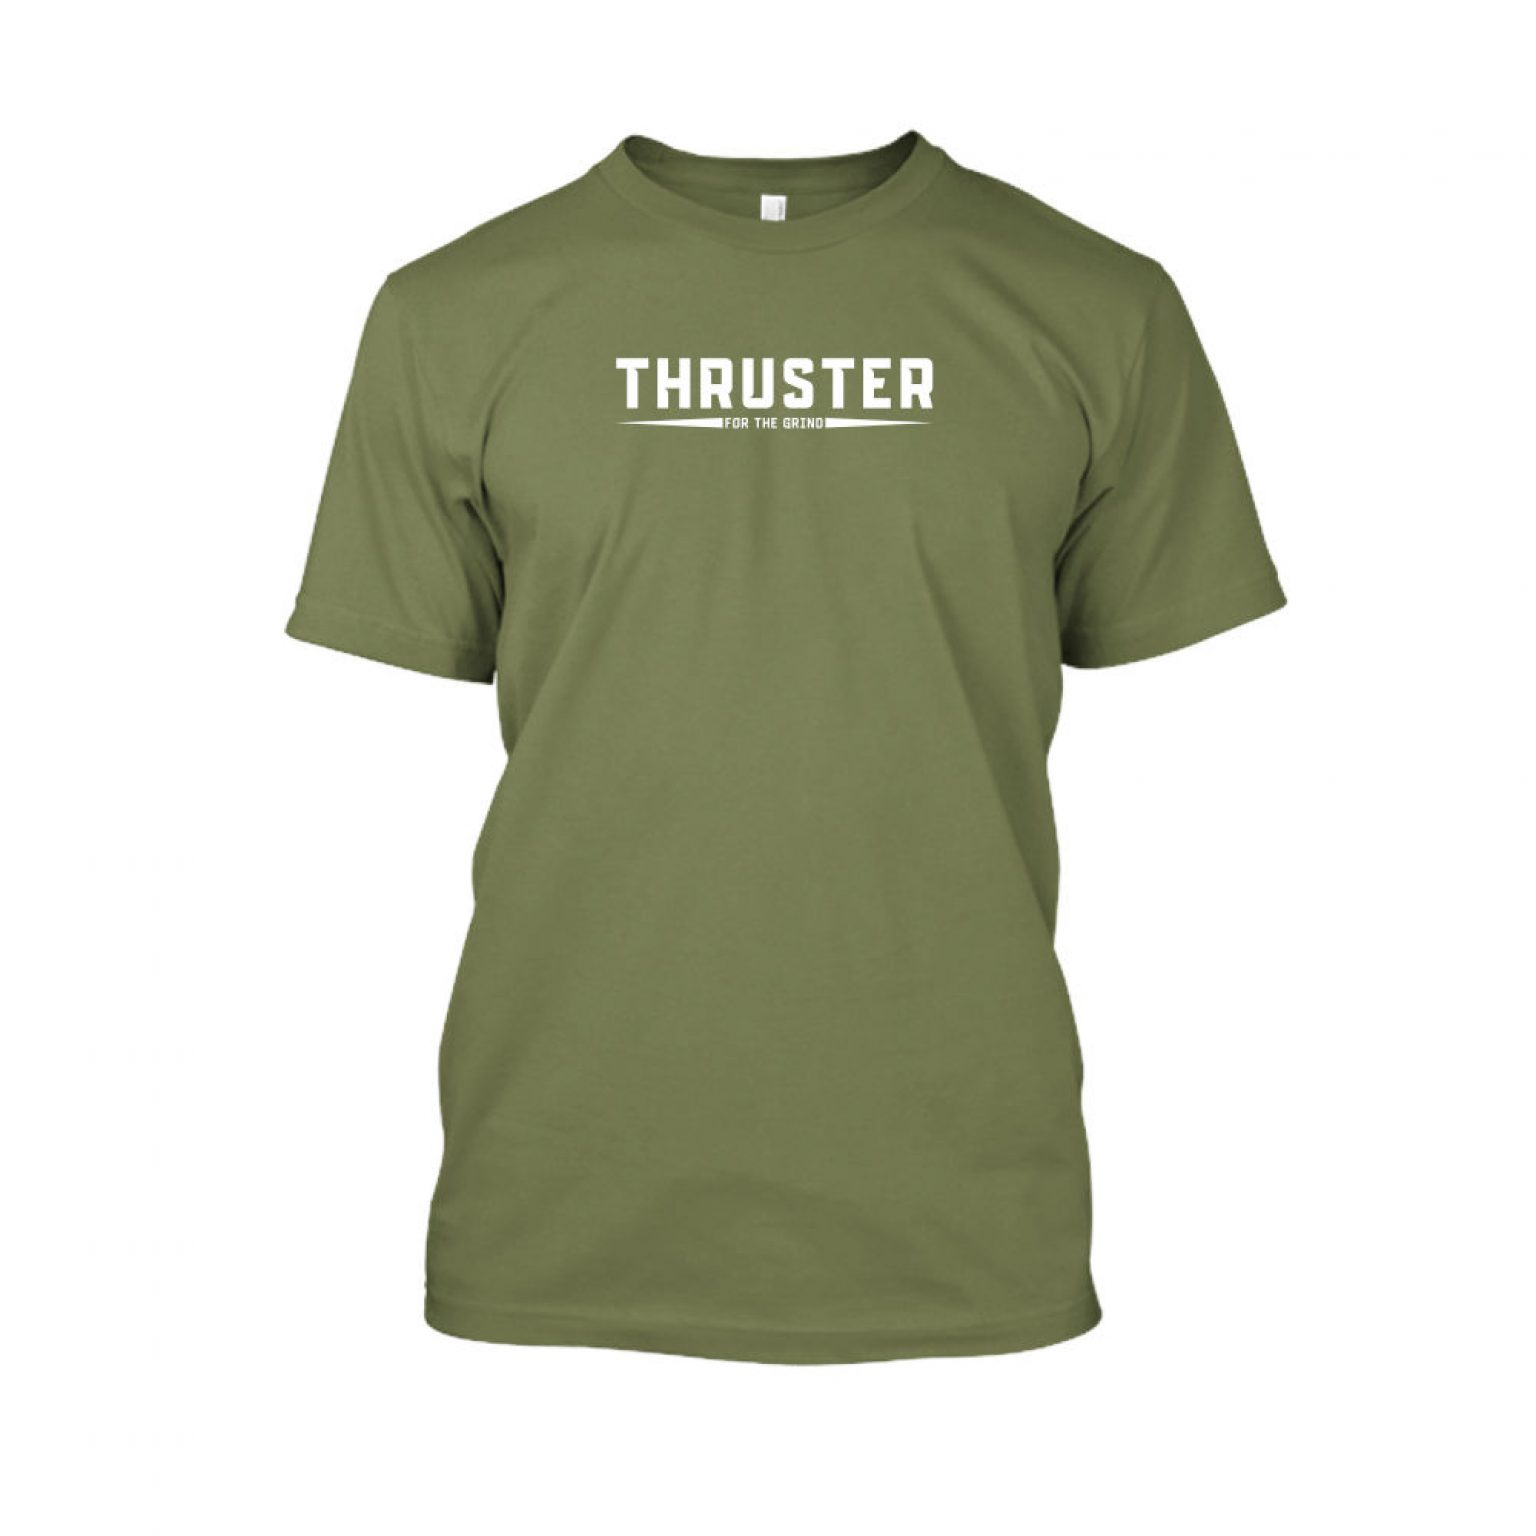 Thruster shirt herren military